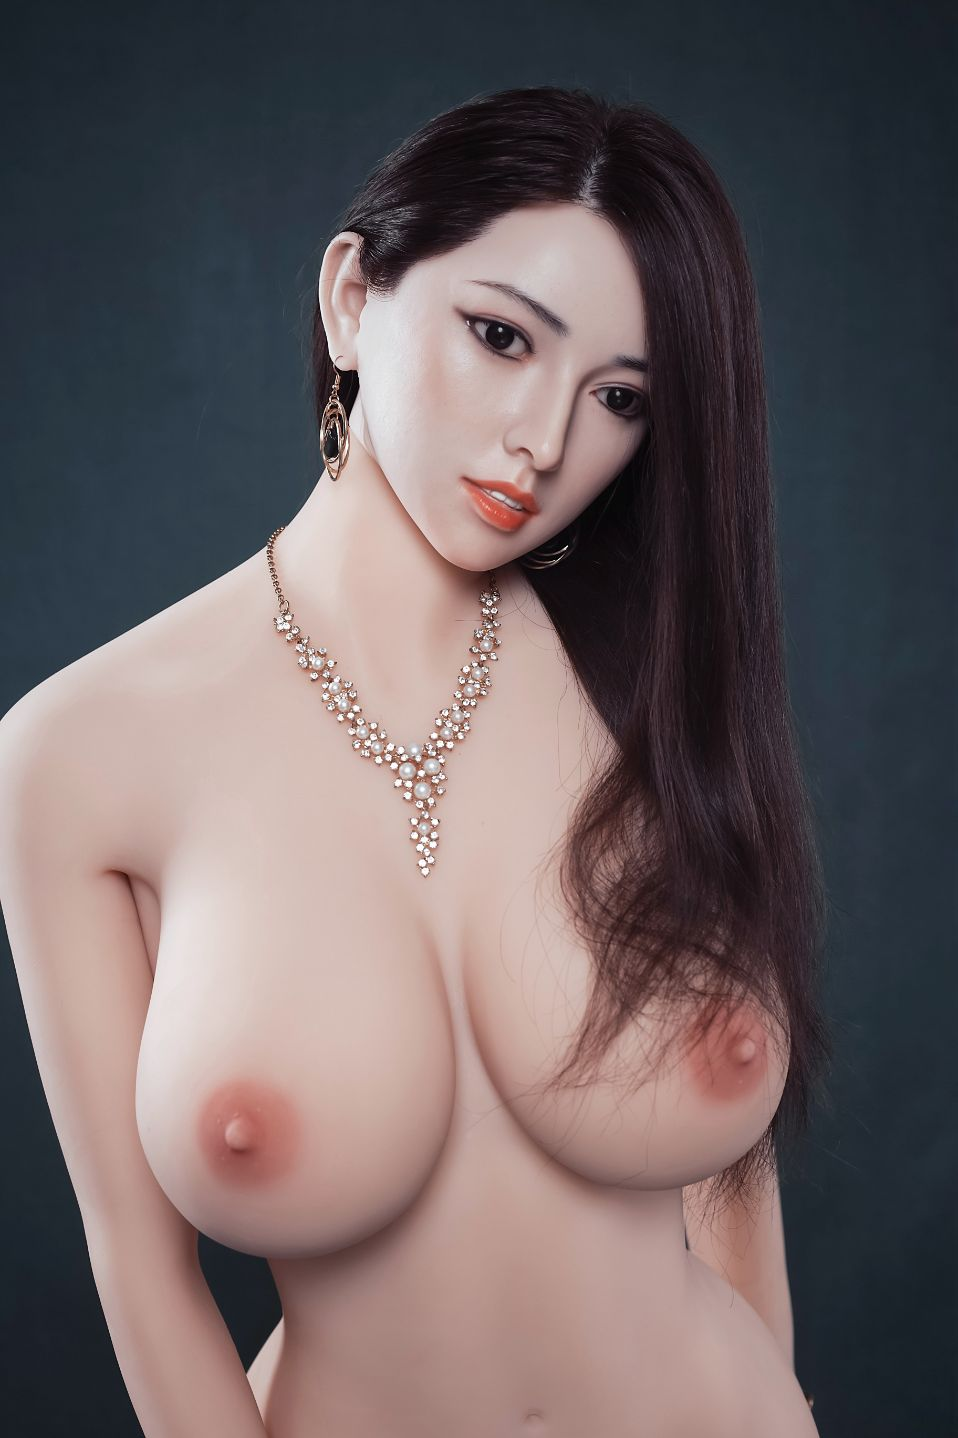 addison 166cm af black hair big boobs athletic tpe sex doll(7)